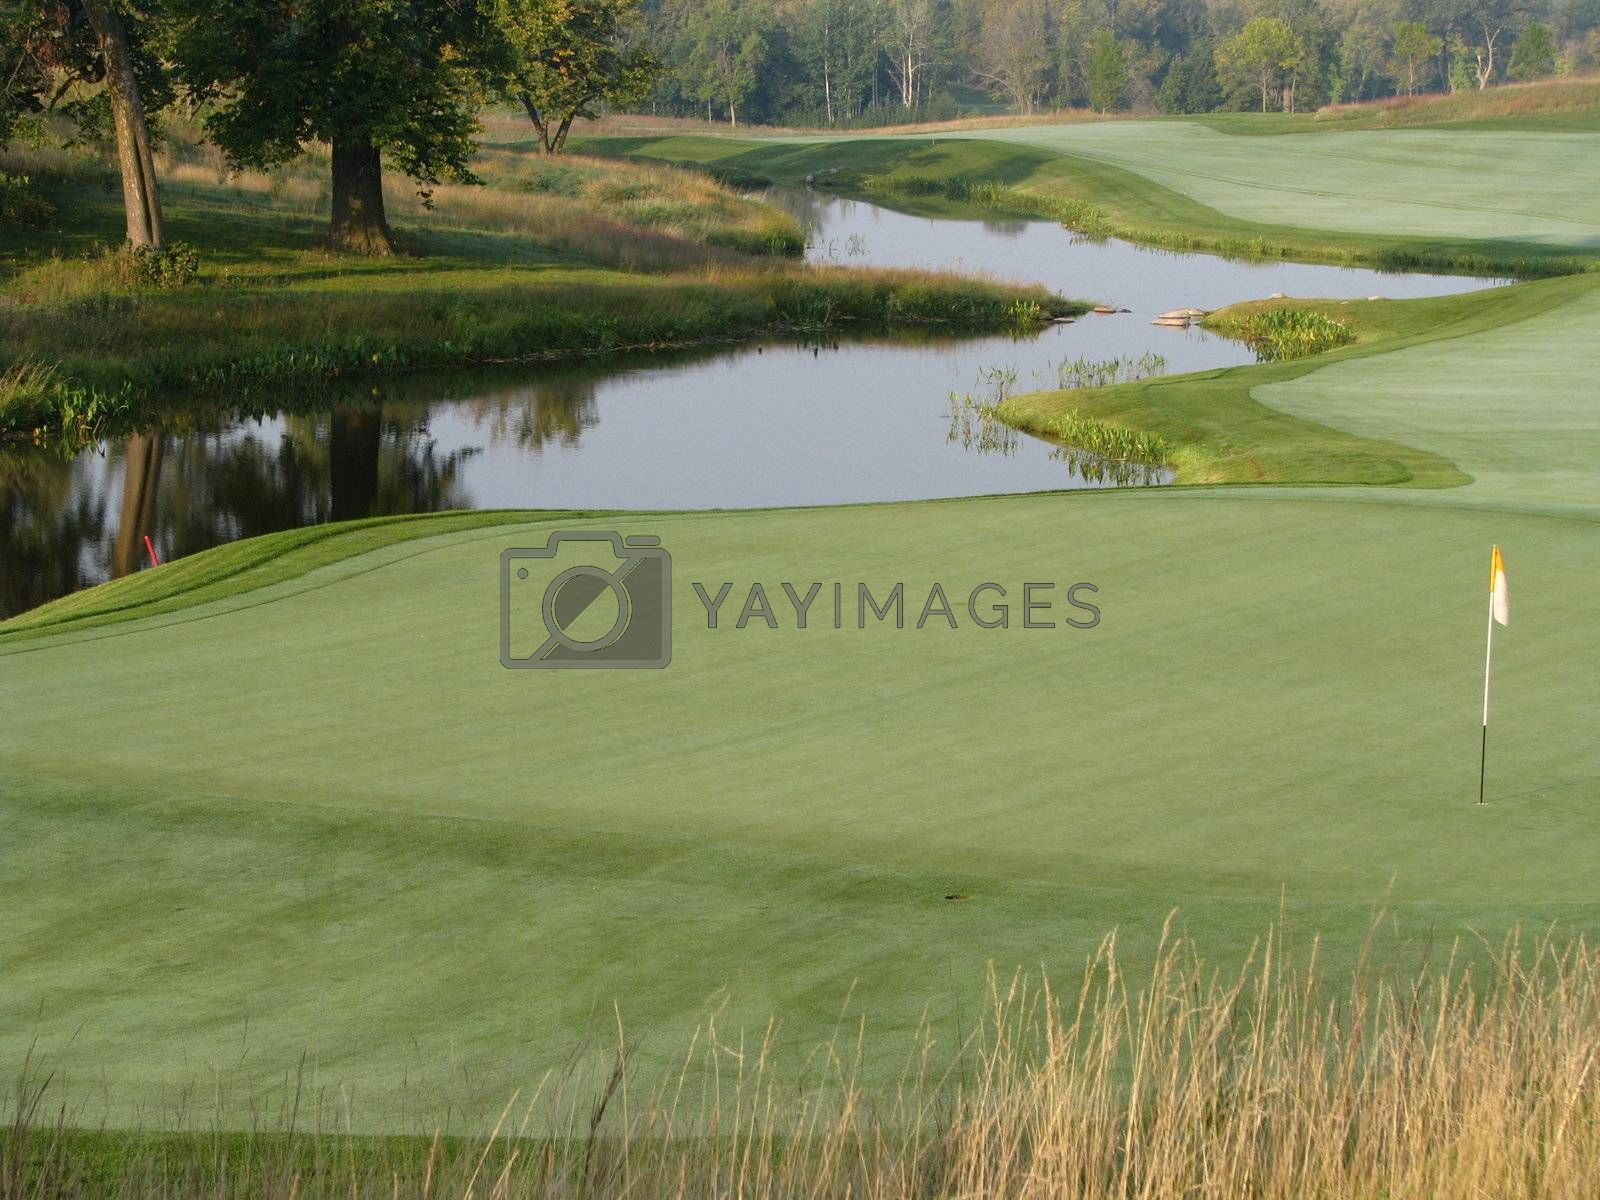 Royalty free image of Golf Green - 18 Holes by ewilliamsdesign